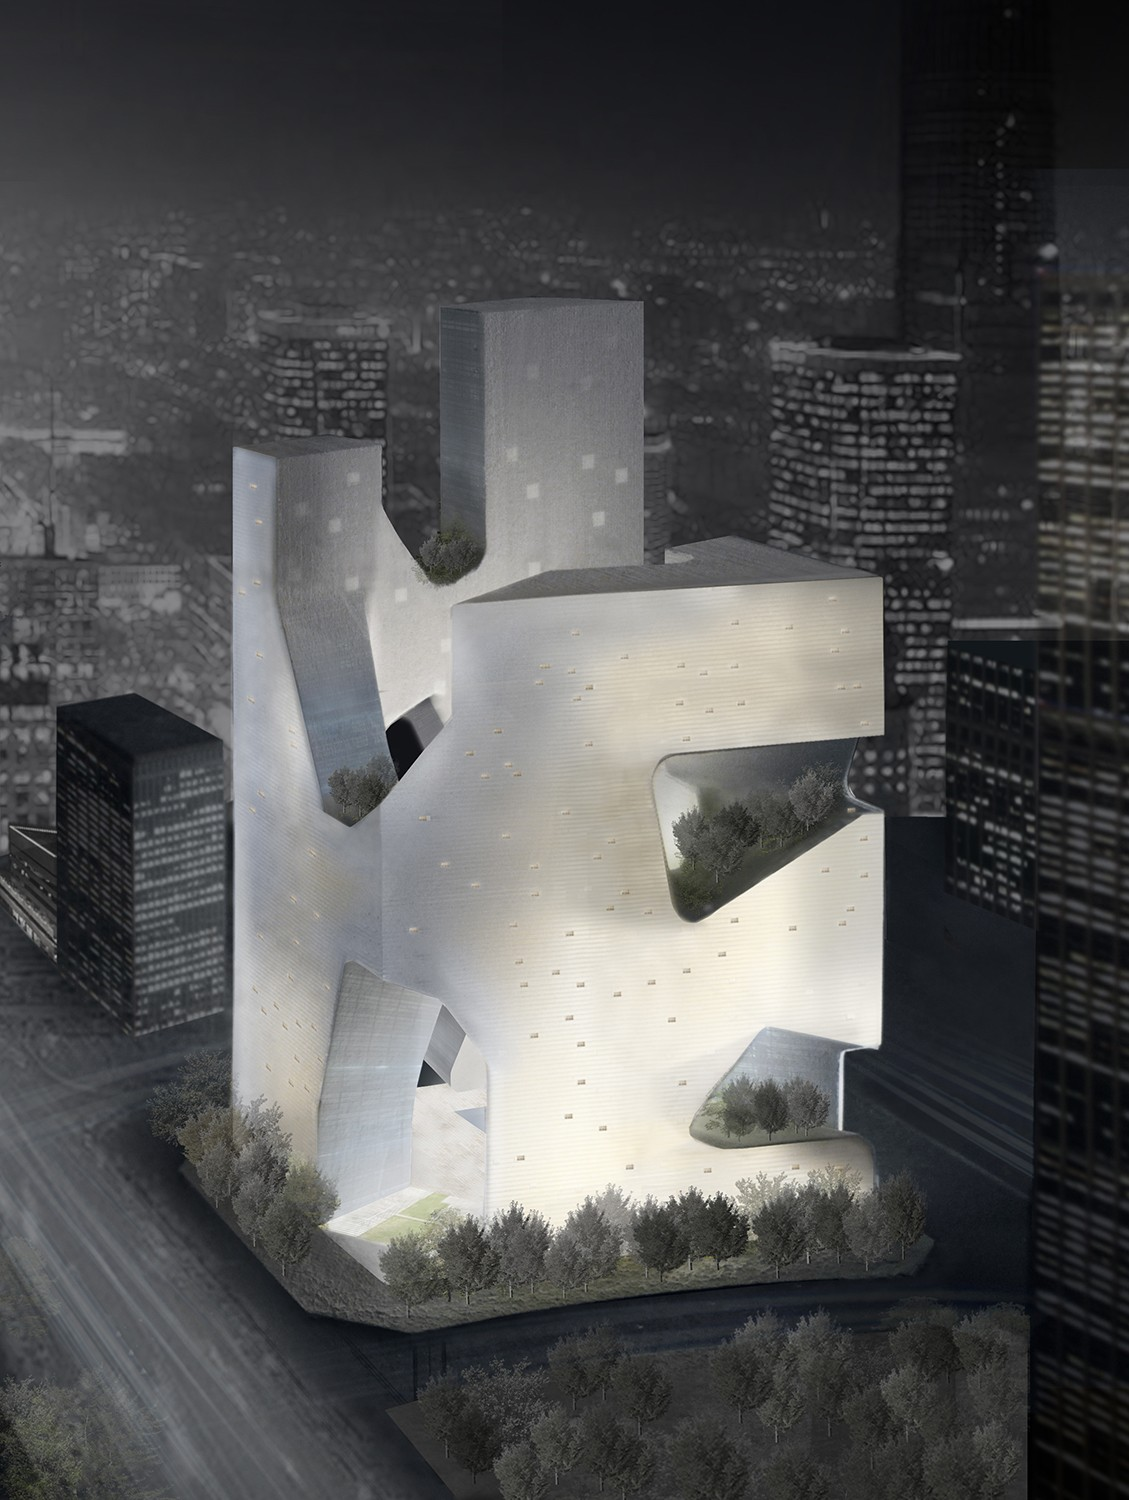 https://stevenholl.sfo2.digitaloceanspaces.com/uploads/projects/project-images/StevenHollArchitects_LiZe_20131120_view_northnightview_WV.jpg